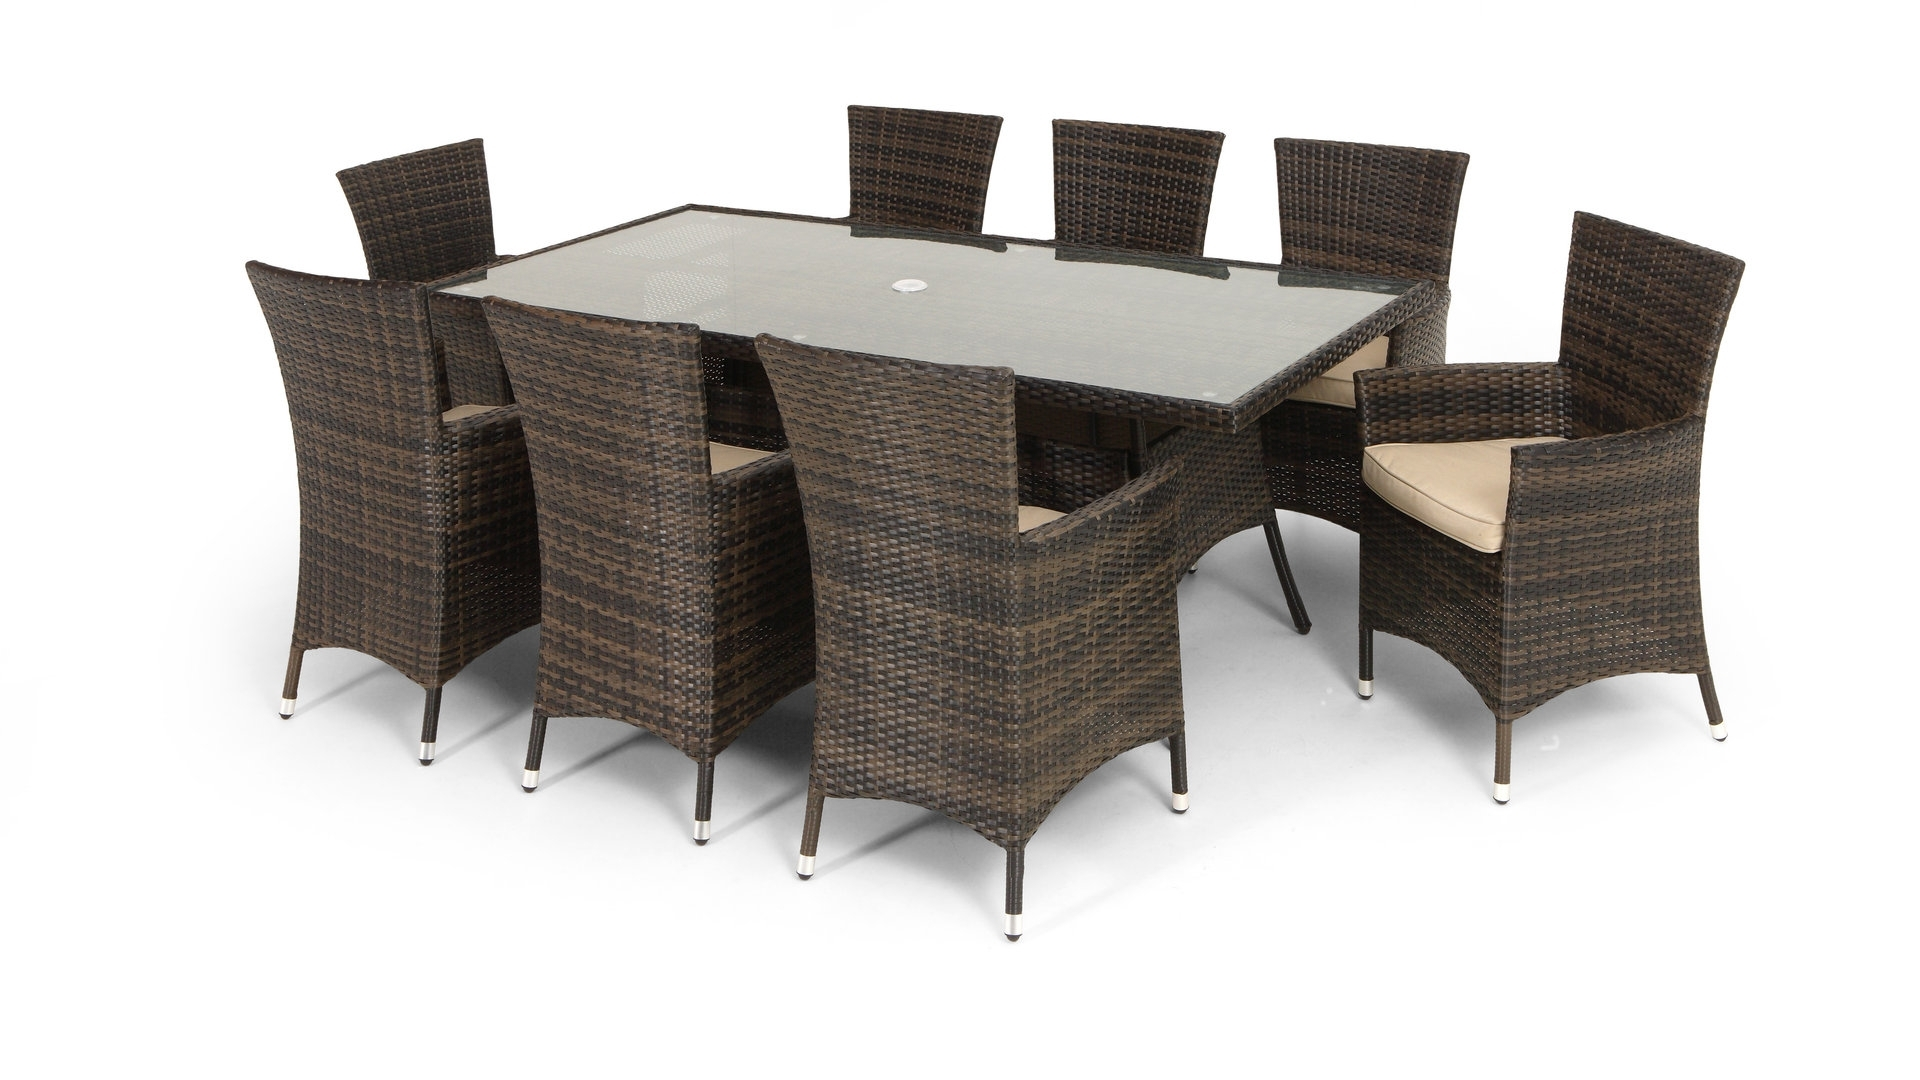 Fashionable Wicker Dining Table Set – Castrophotos Pertaining To Rattan Dining Tables And Chairs (View 12 of 25)